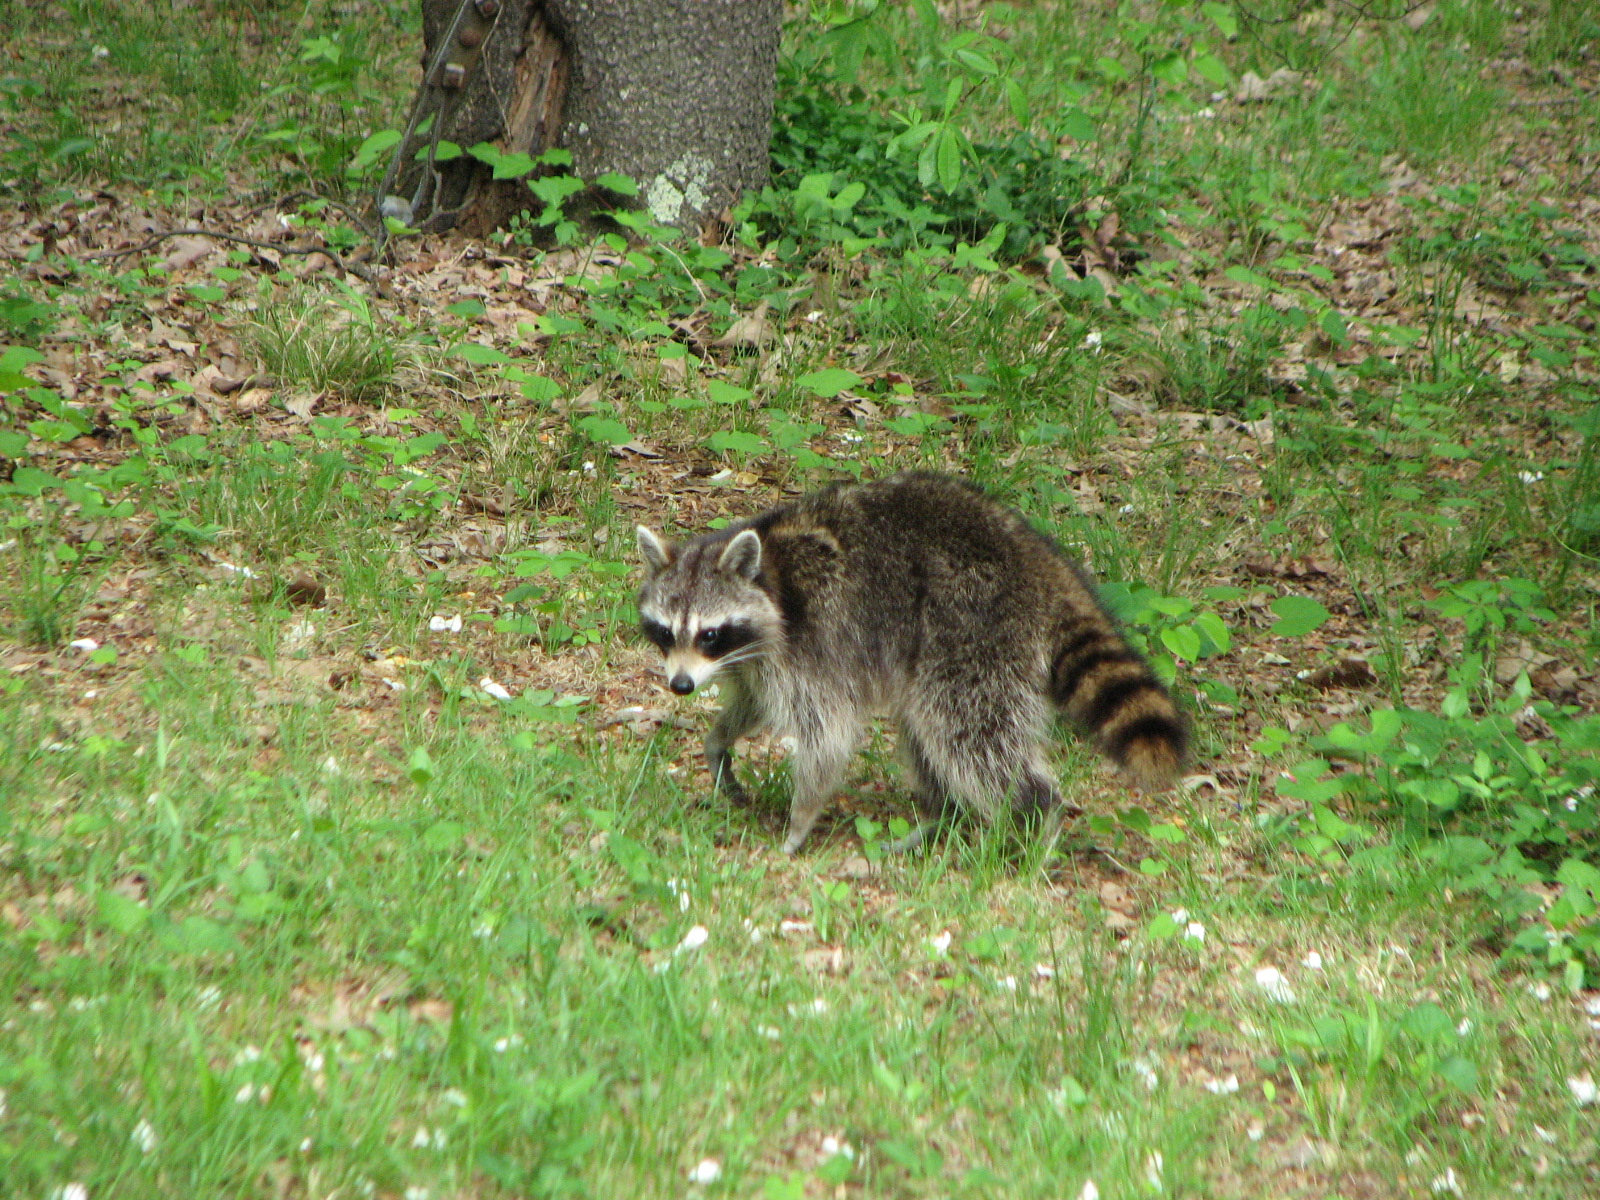 A raccoon in our yard April 28, 2014.